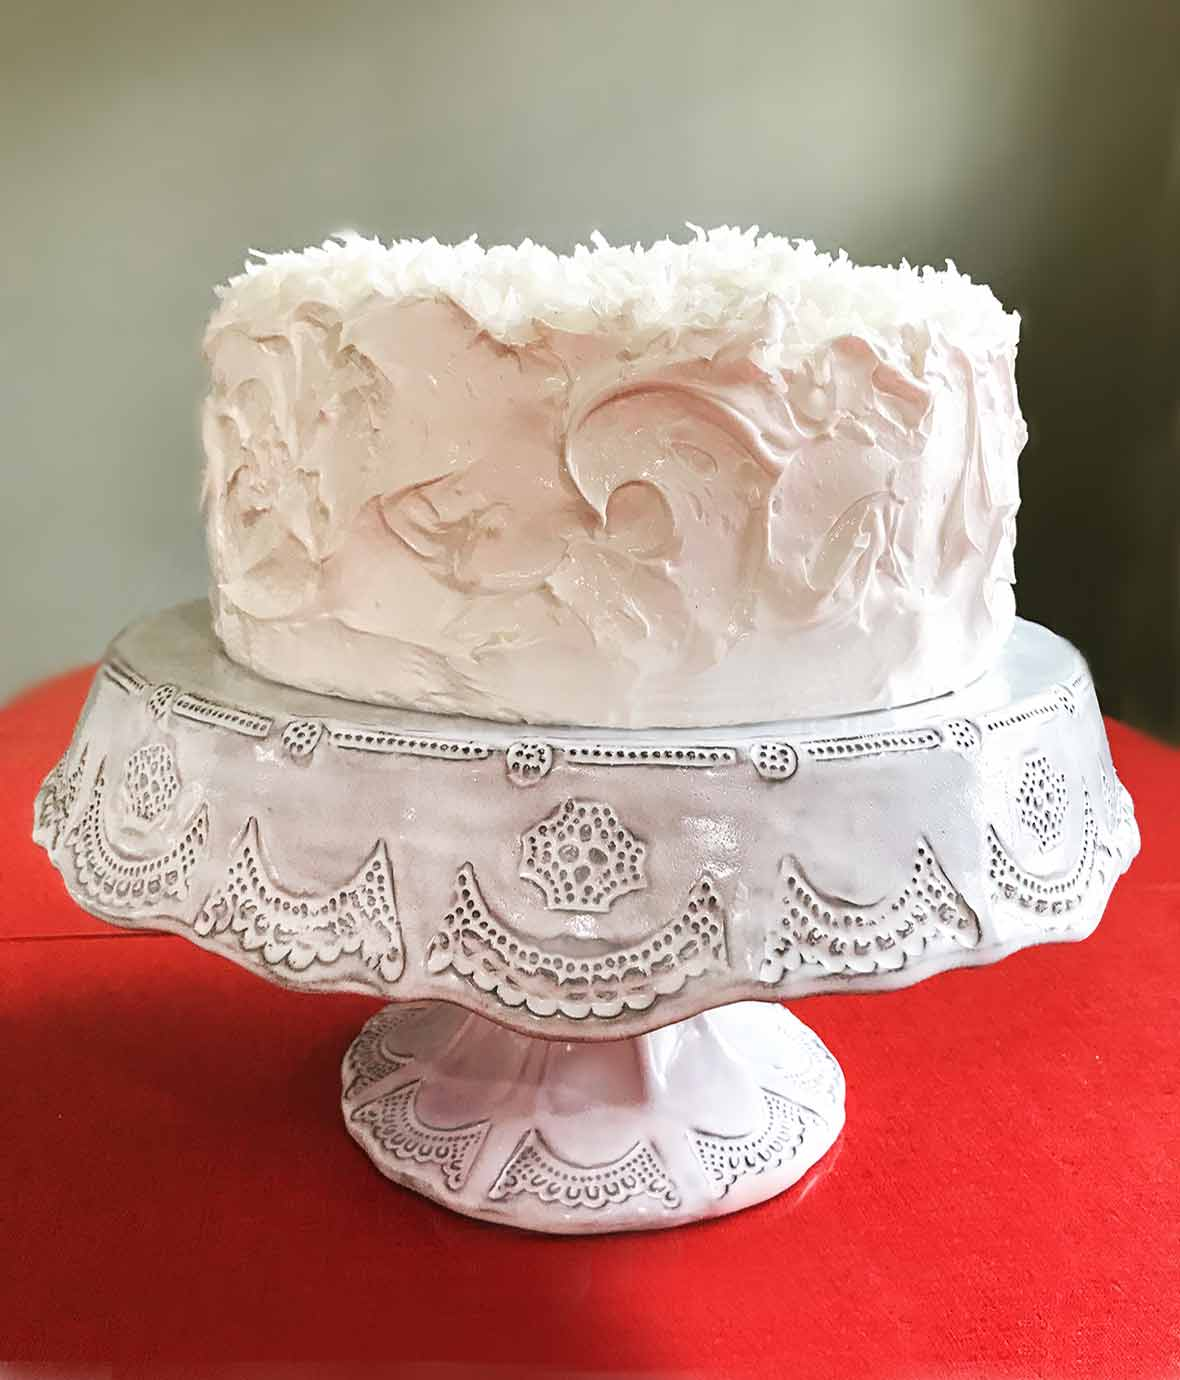 Coconut layer cake with white meringue frosting topped with shredded coconut on a white cake stand on a red table